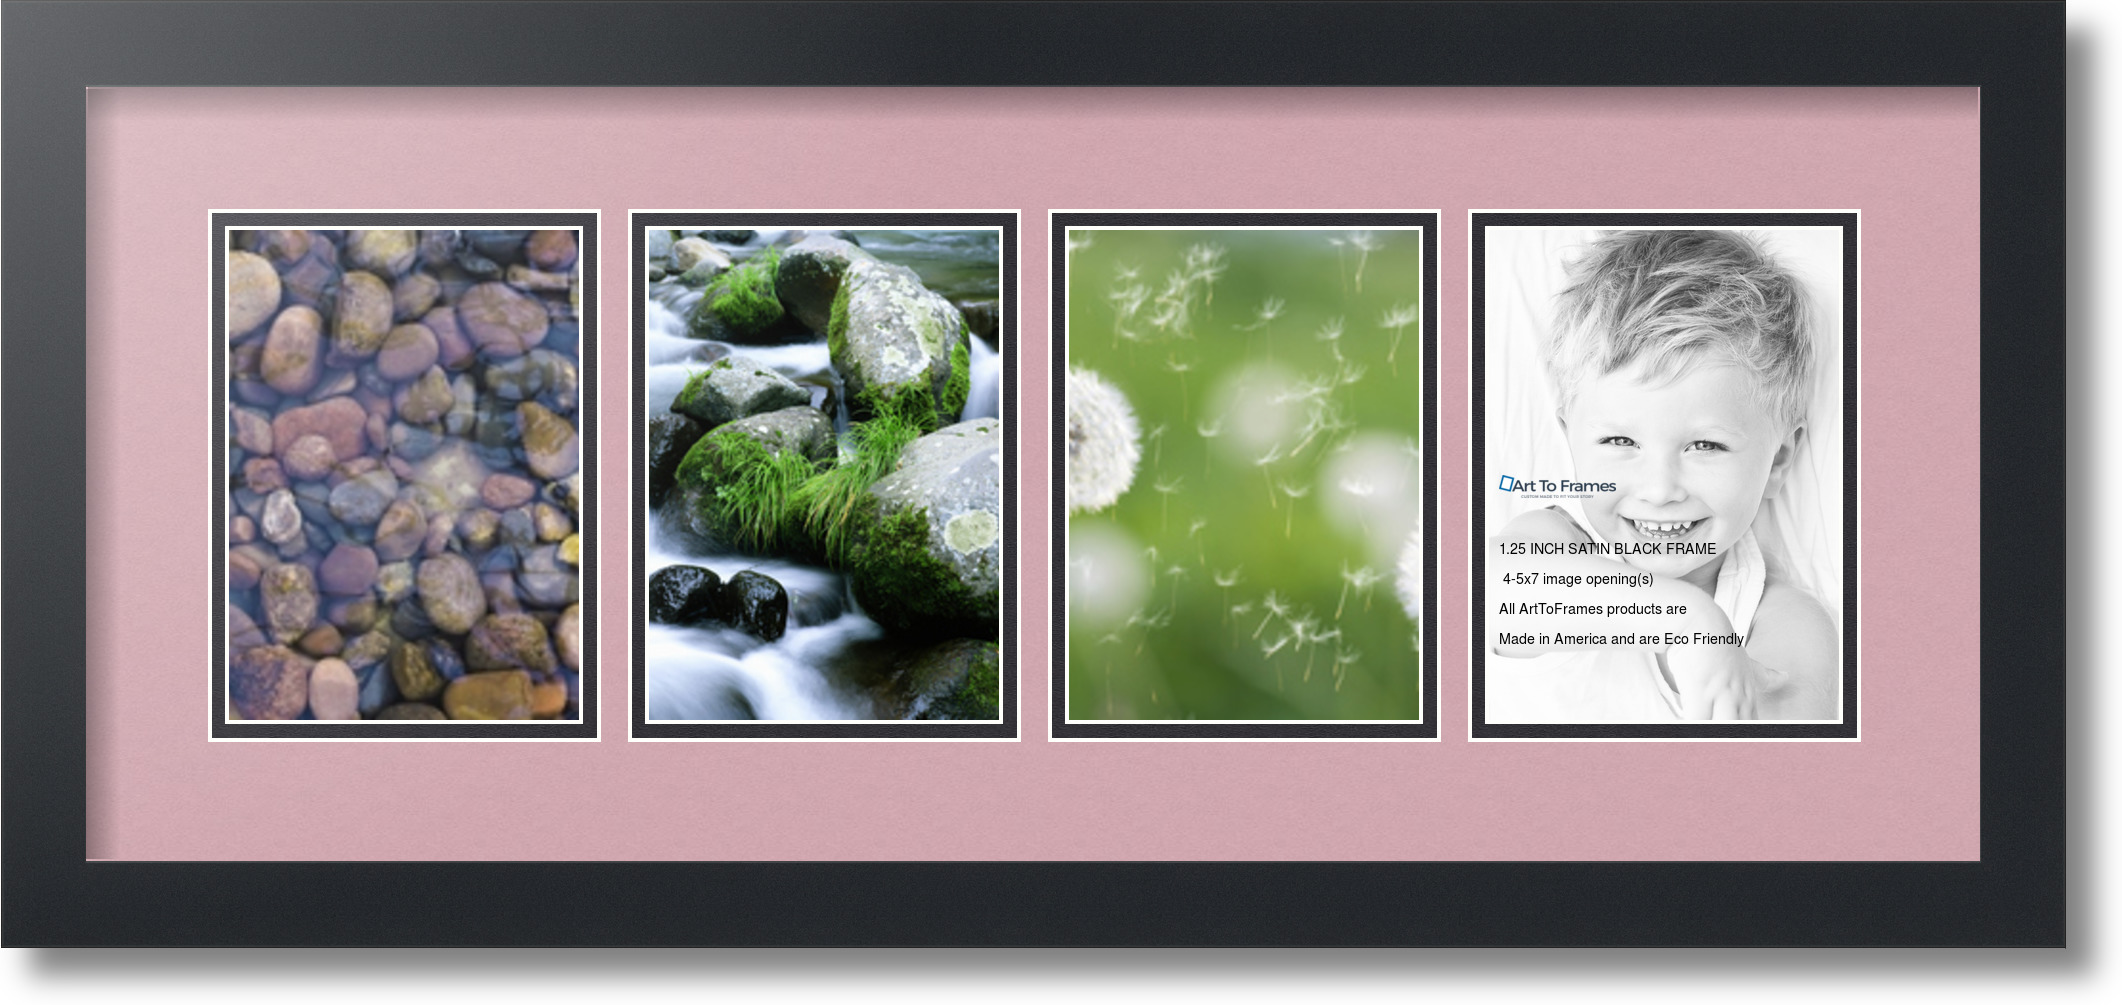 Arttoframes Collage Mat Picture Photo Frame 4 5x7